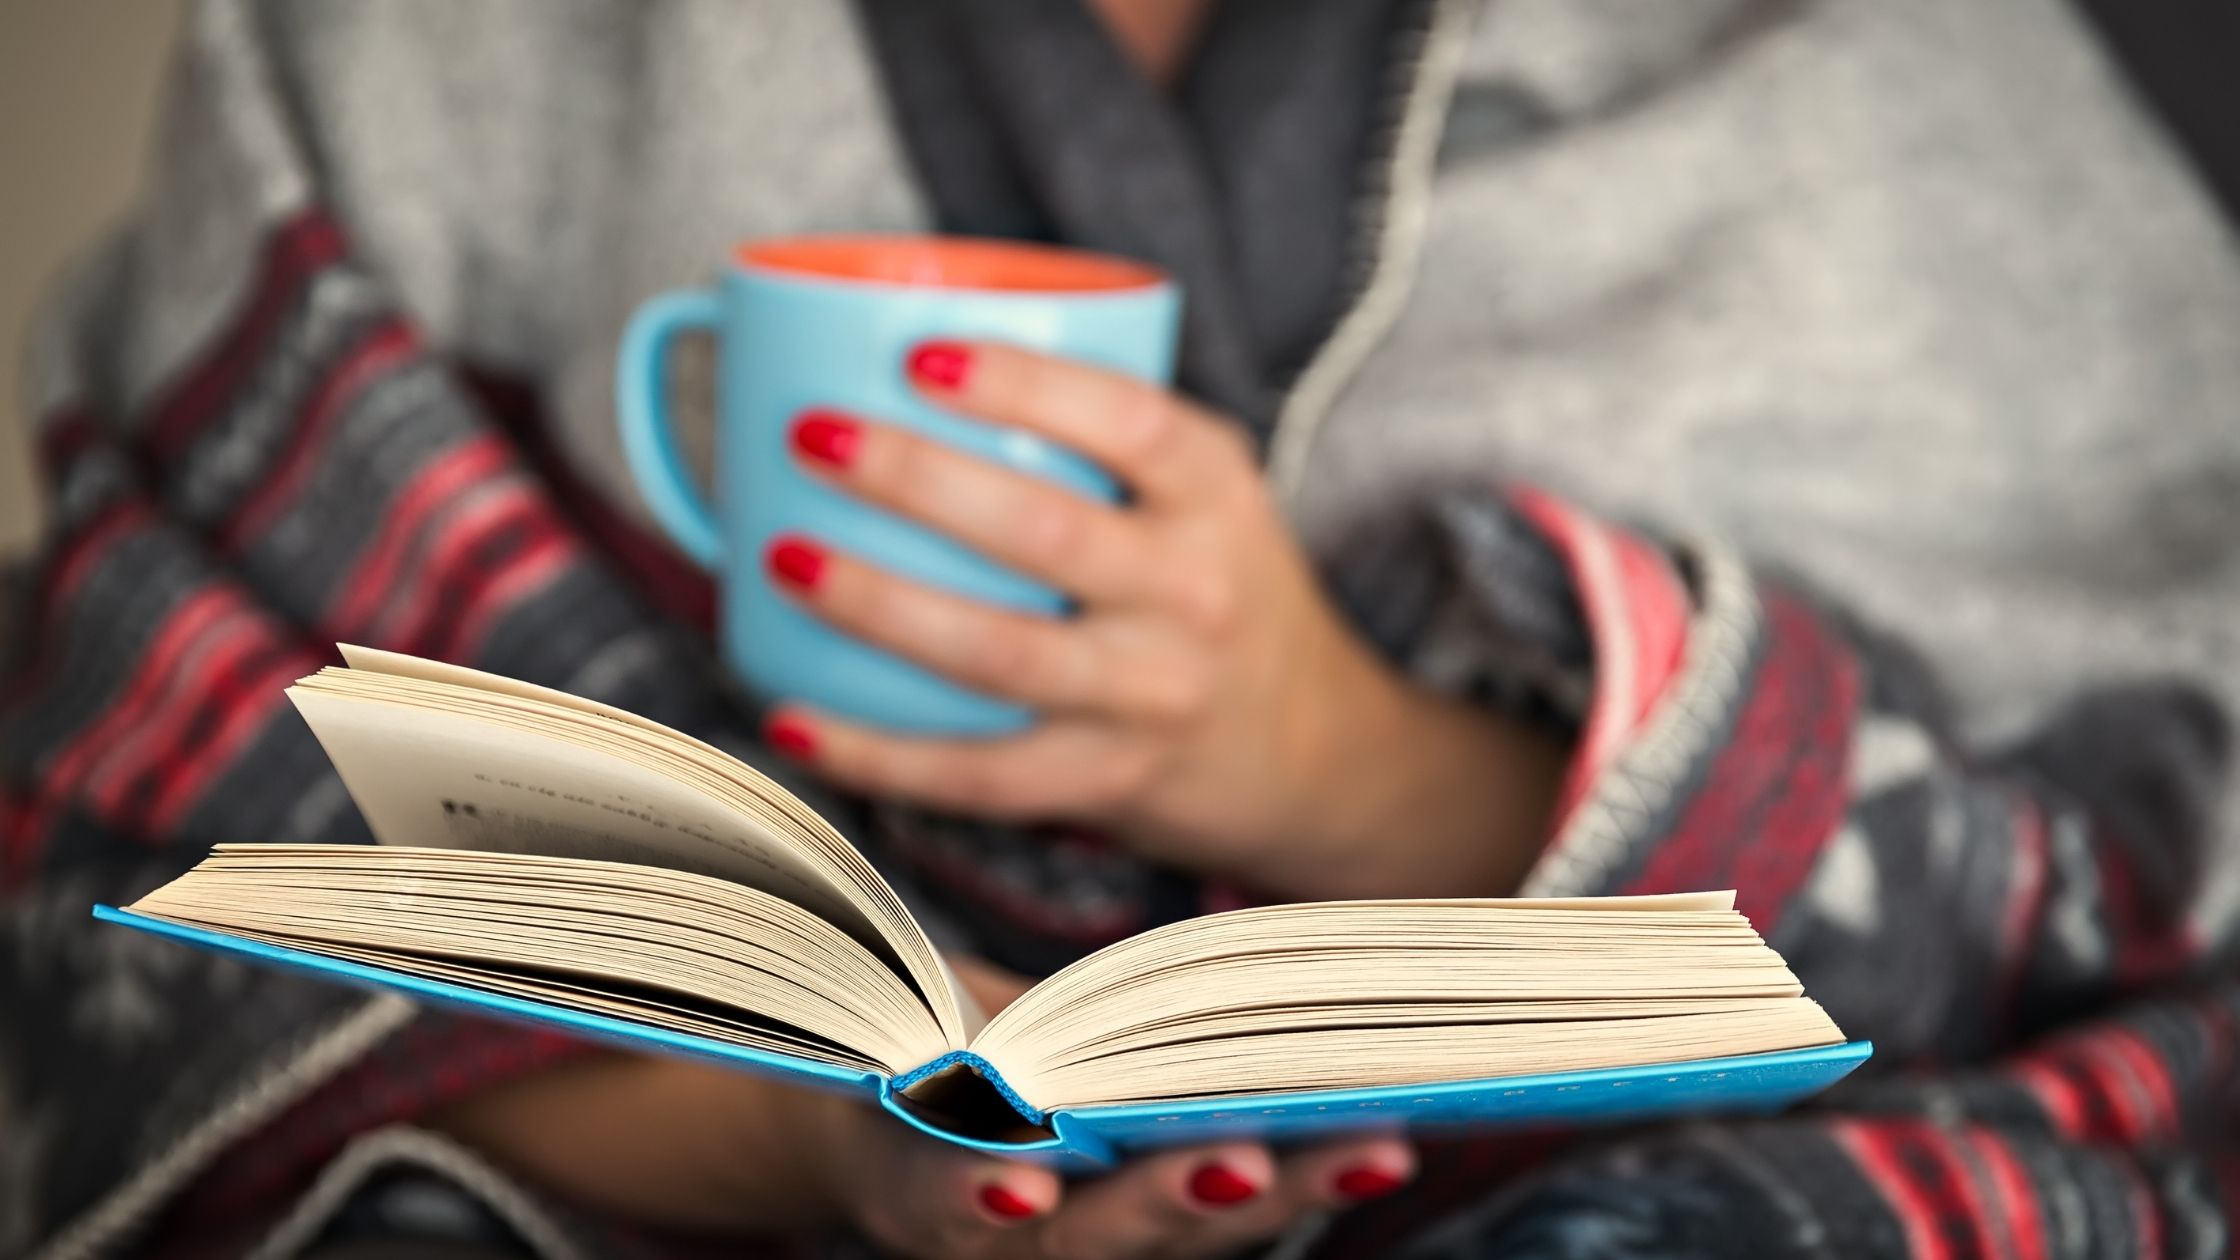 person holding a mug and reading a book